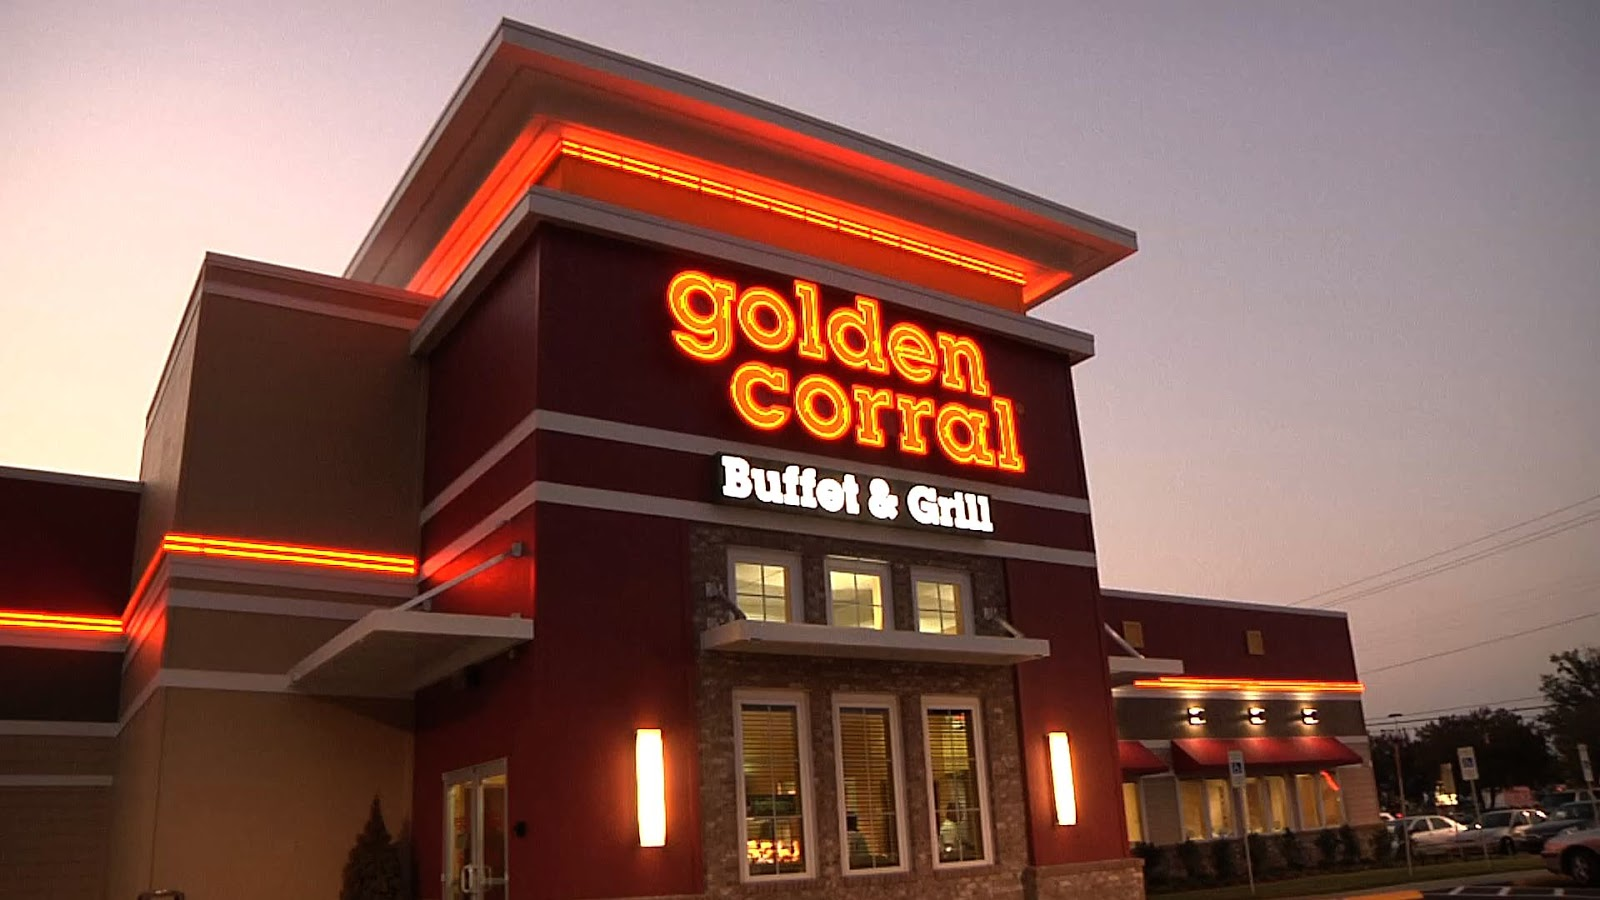 Oct 15,  · Golden Corral, Cape Coral: See unbiased reviews of Golden Corral, rated 3 of 5 on TripAdvisor and ranked # of restaurants in Cape Coral. Cape Coral. We have eaten at several Golden Corral locations, most of them pretty good. This 3/5().